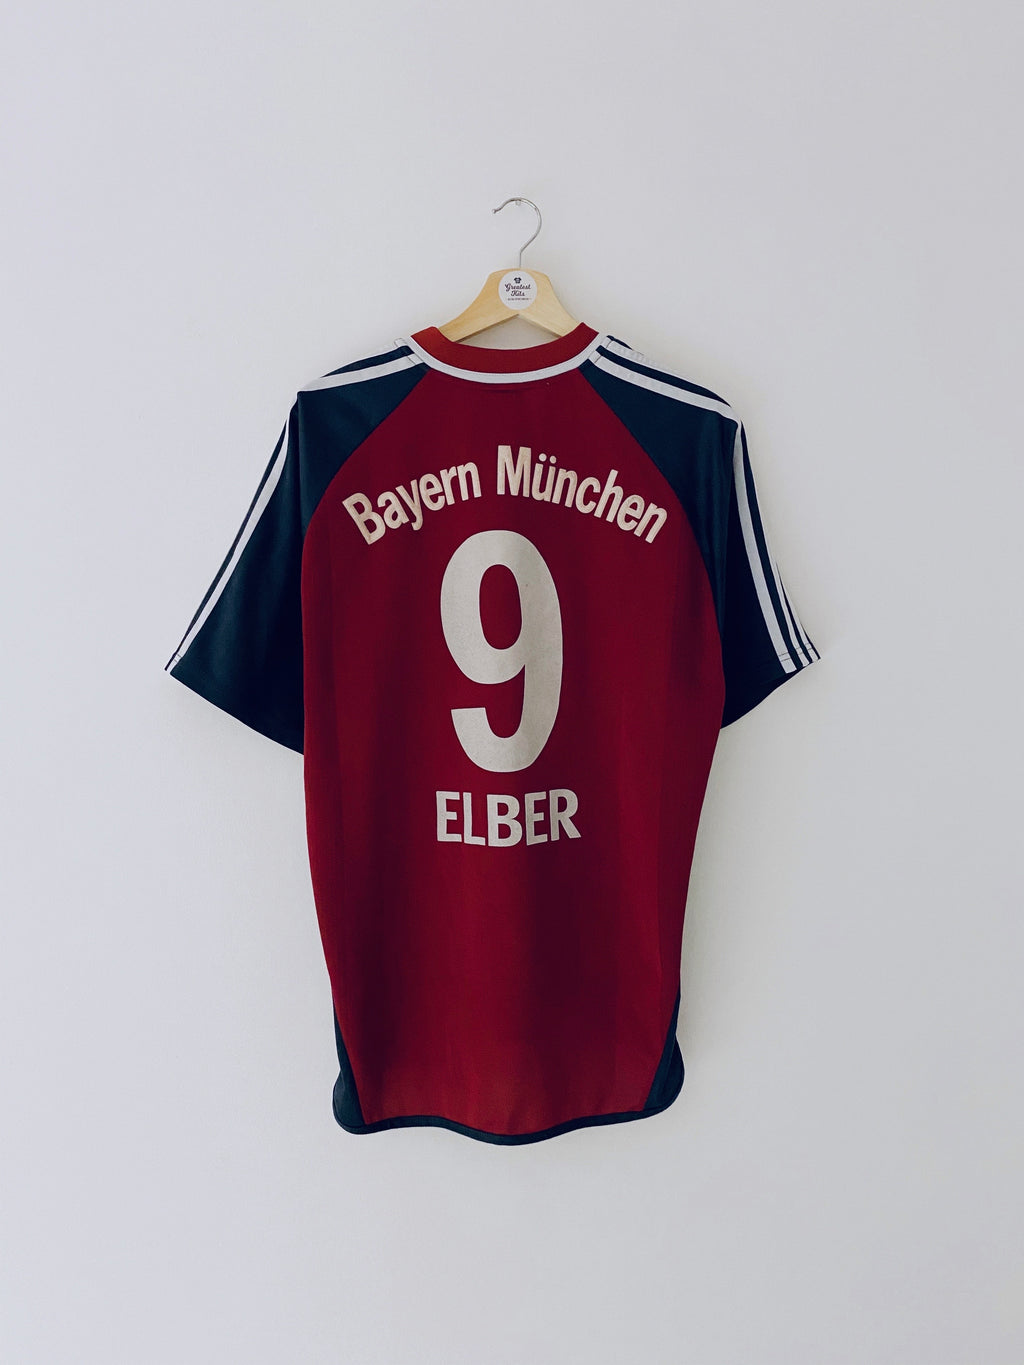 2001/02 Bayern Munich Home Shirt Elber #9 (M) 7/10